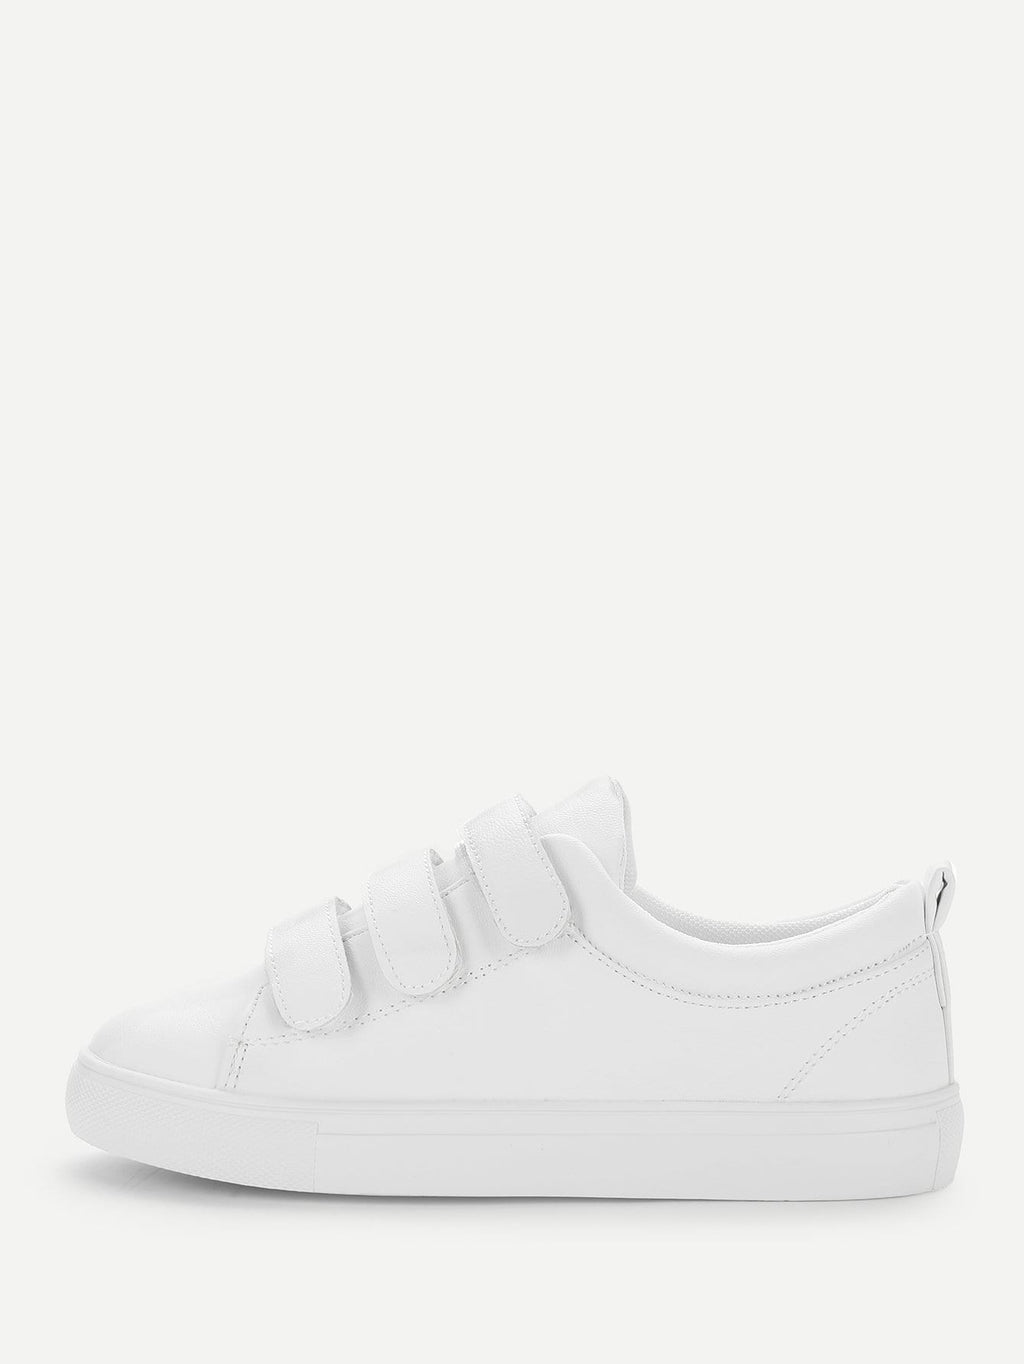 Womens Sneakers - Velcro Detail Low Top Sneakers